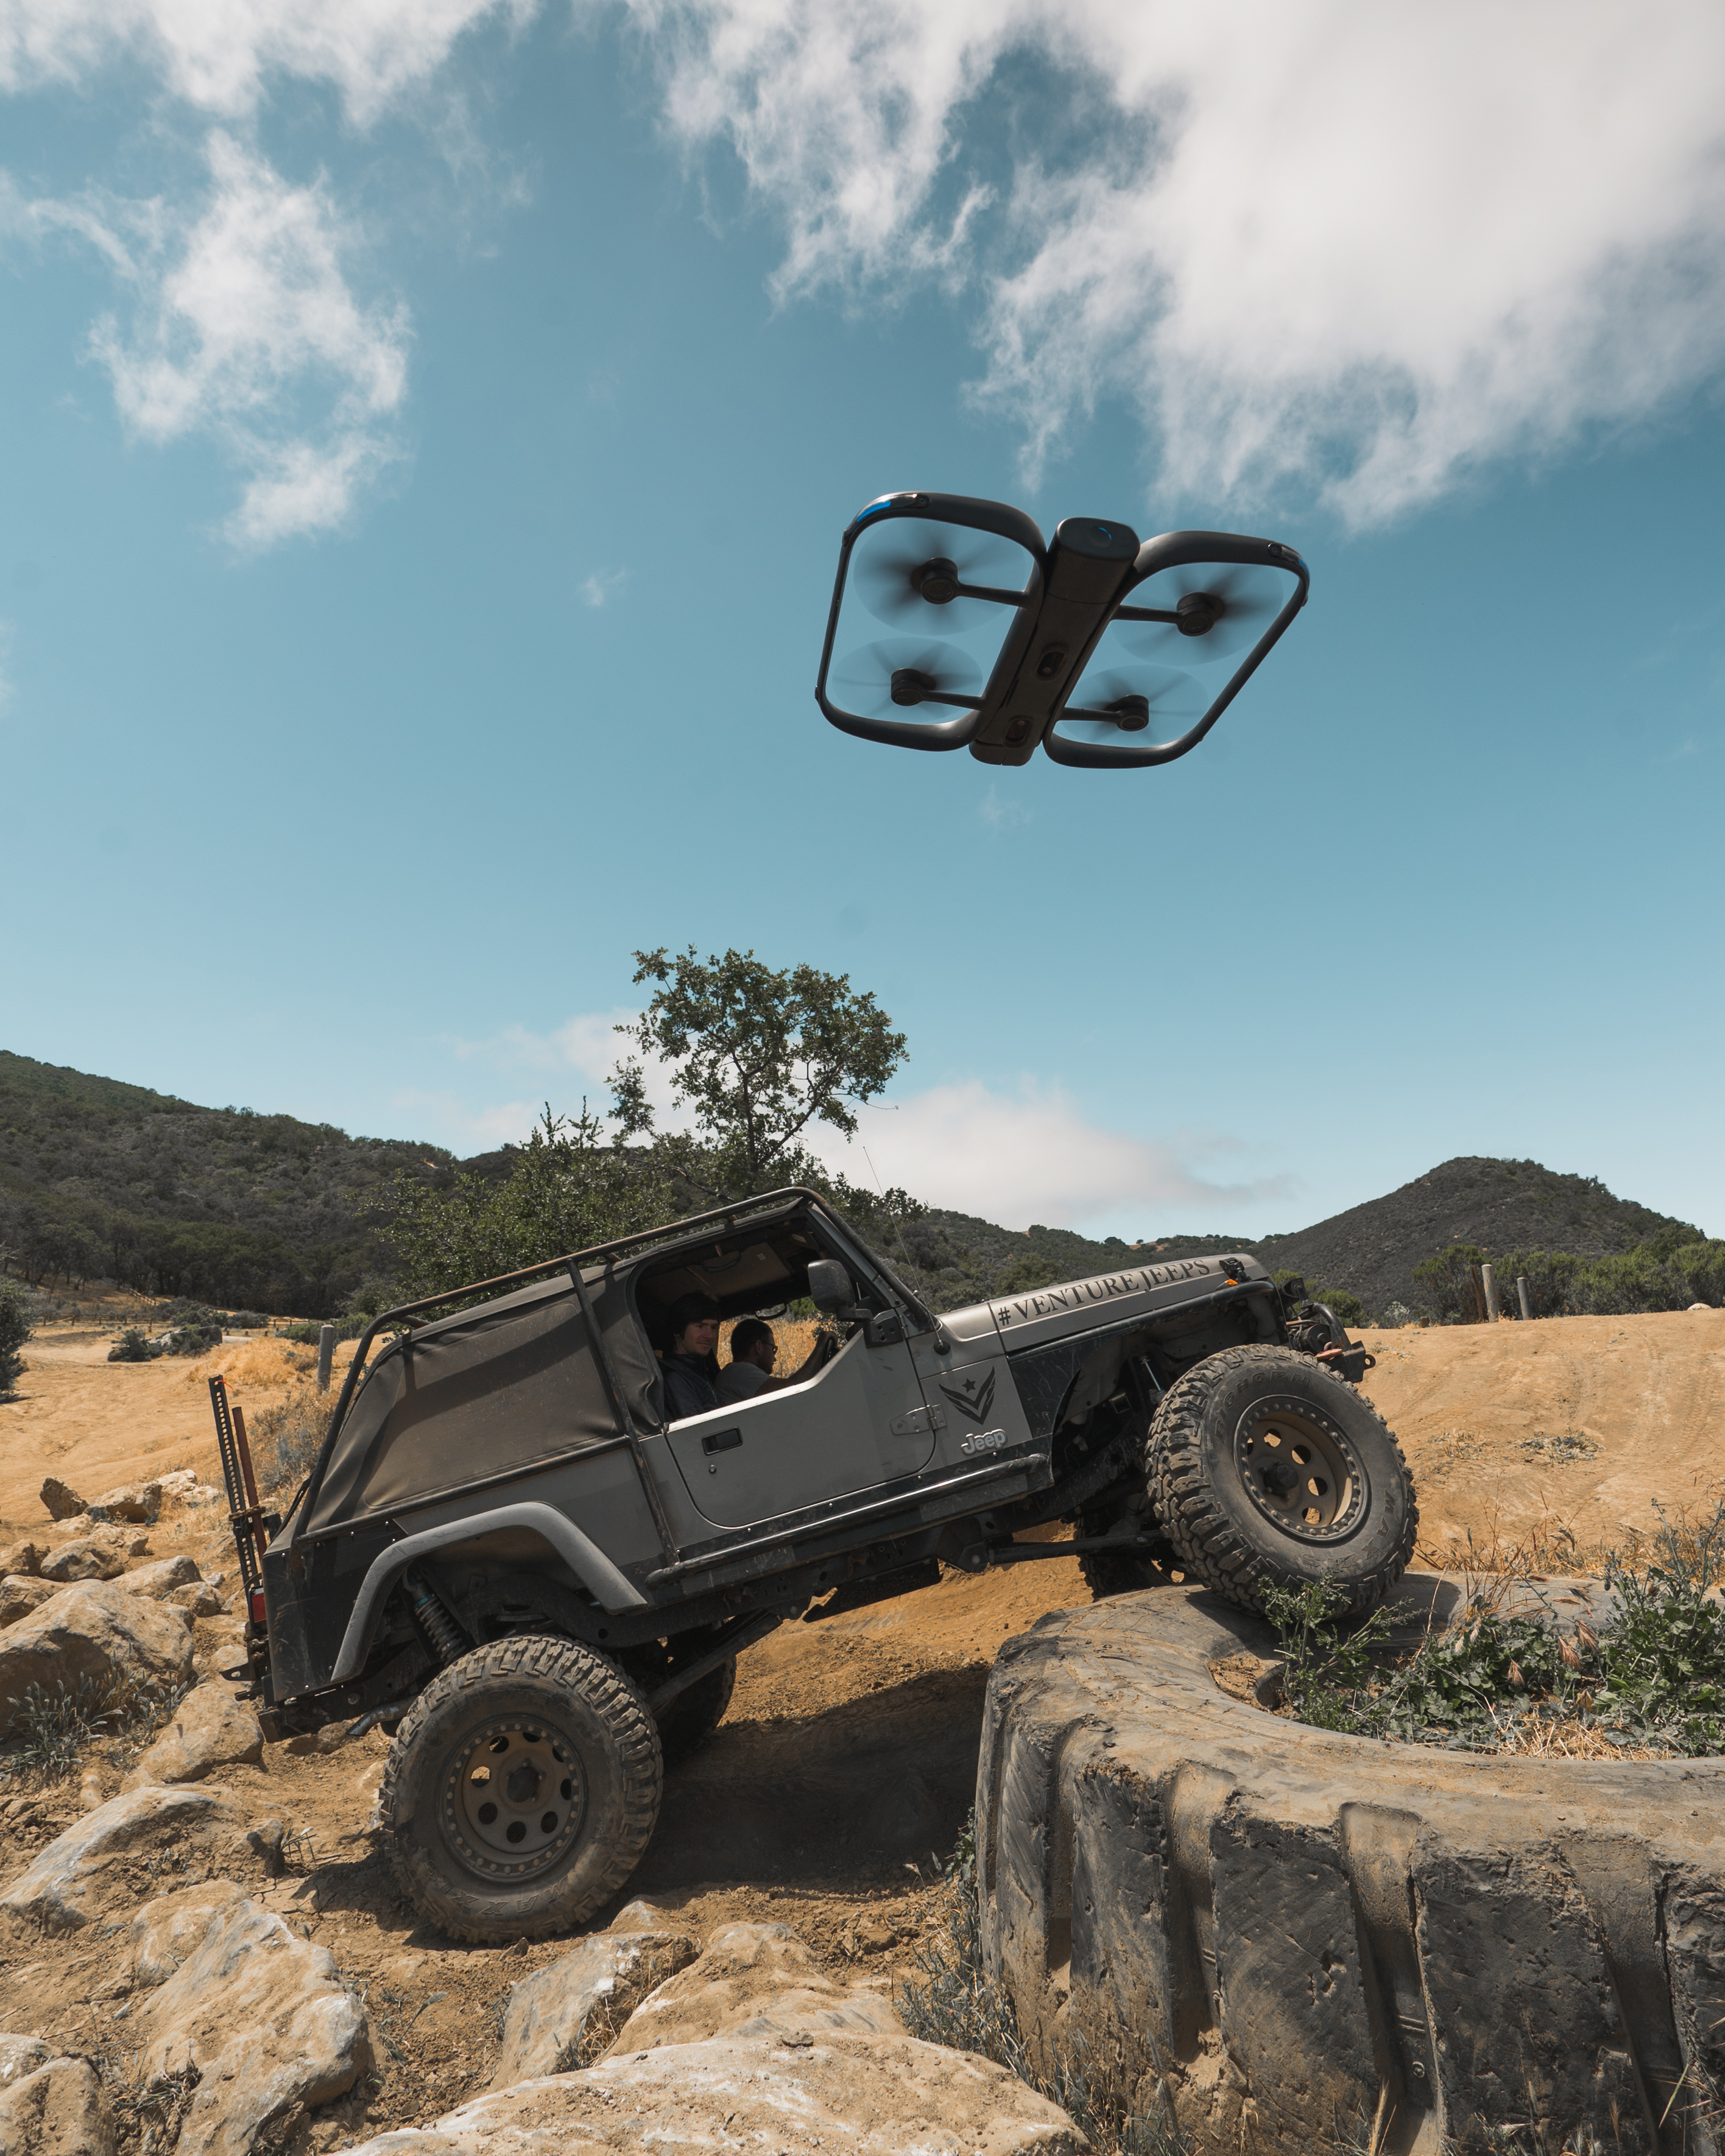 The insanely smart Skydio R1 just got smarter: now it can track cars, too